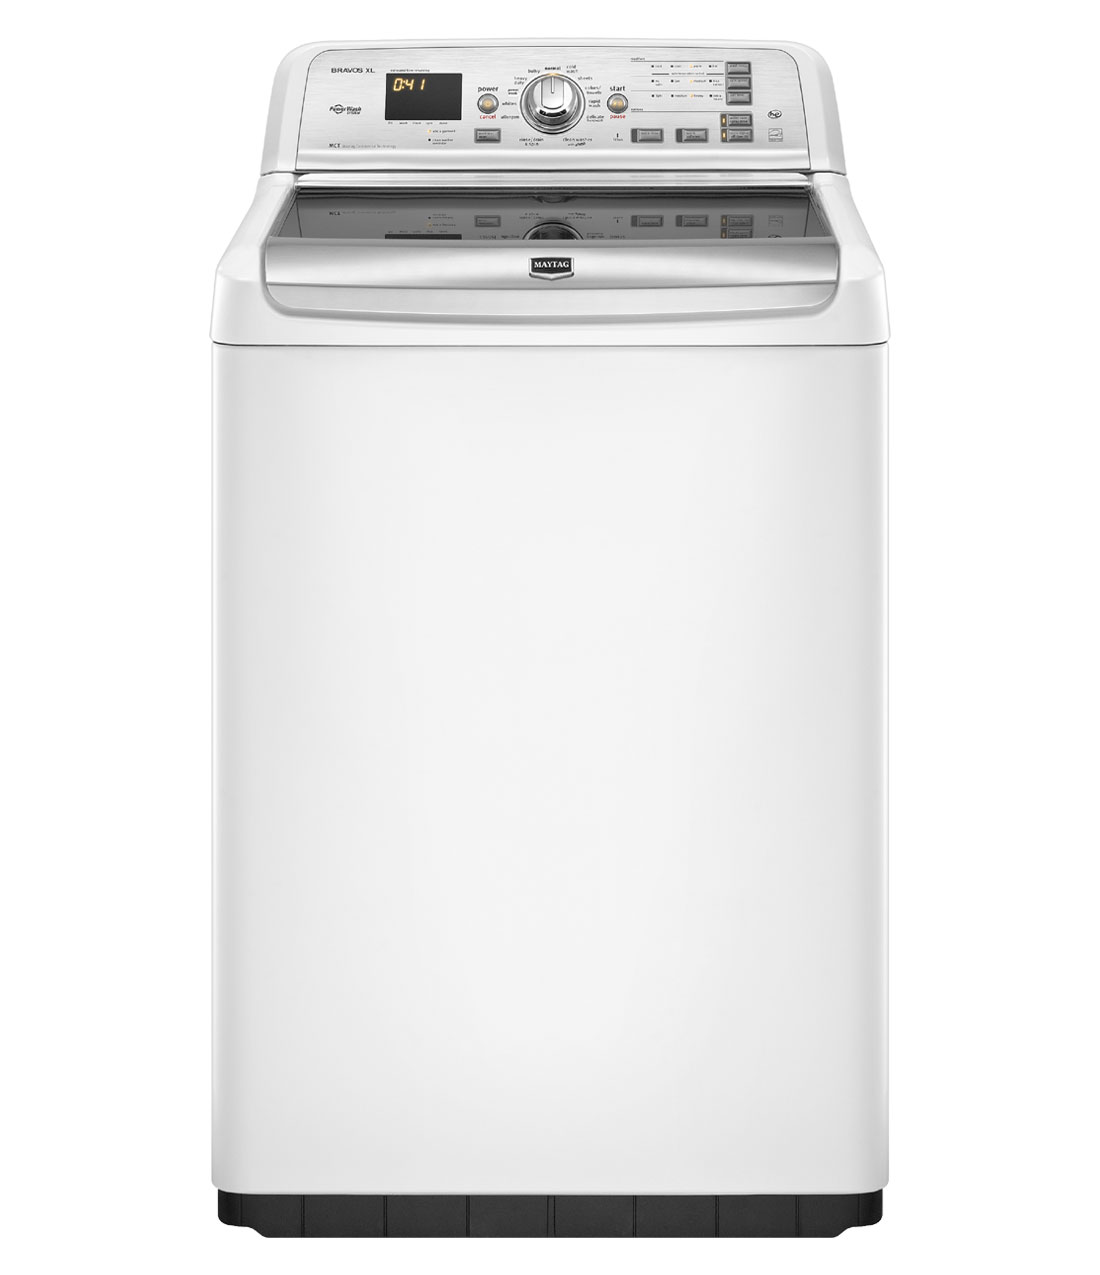 Review of Maytag Bravos XL 4.6 cu. ft. High-Efficiency Top L ...